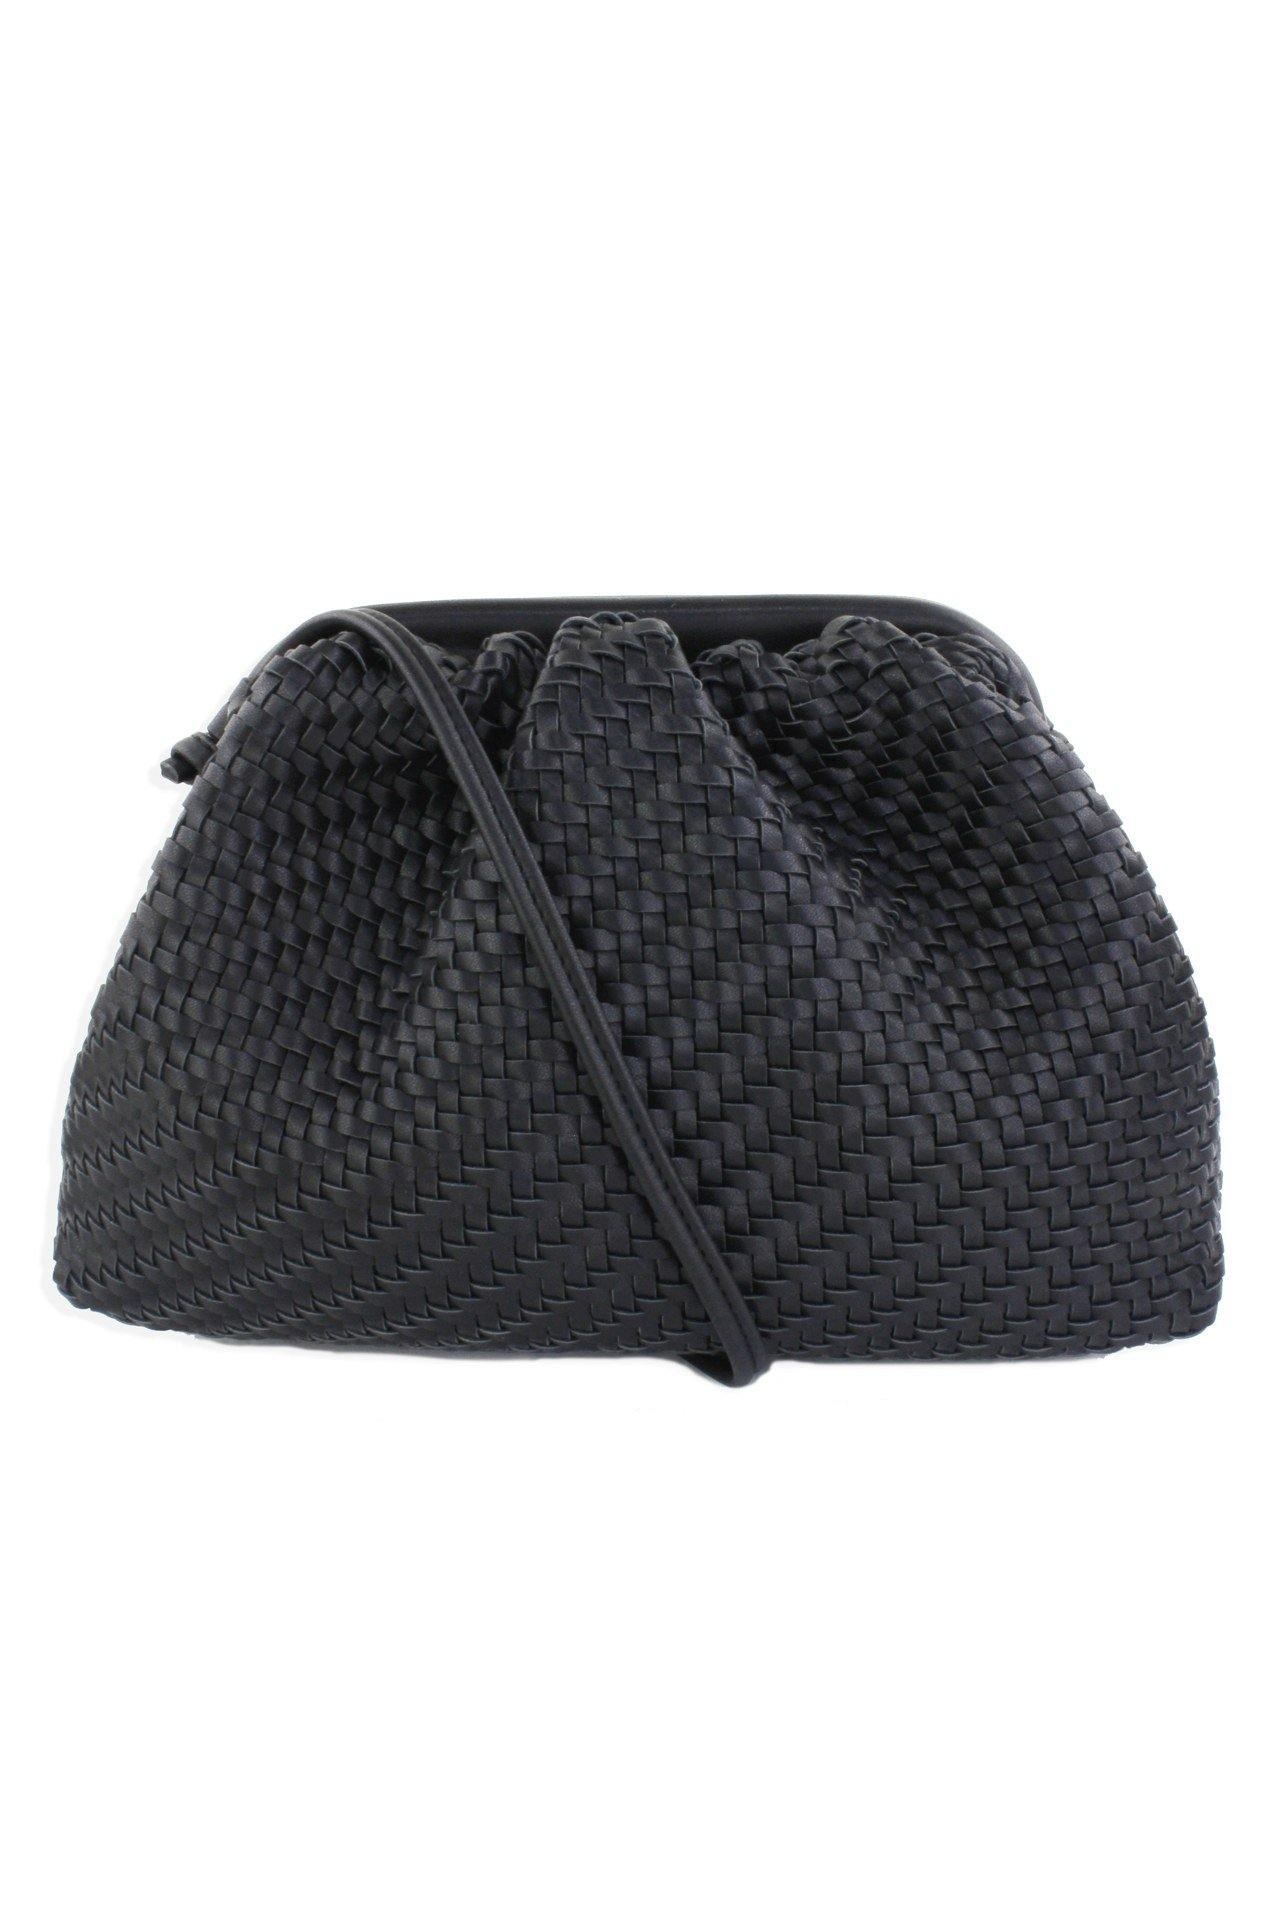 Black Framed Woven Crossbody Bag - Tres Chic Houston